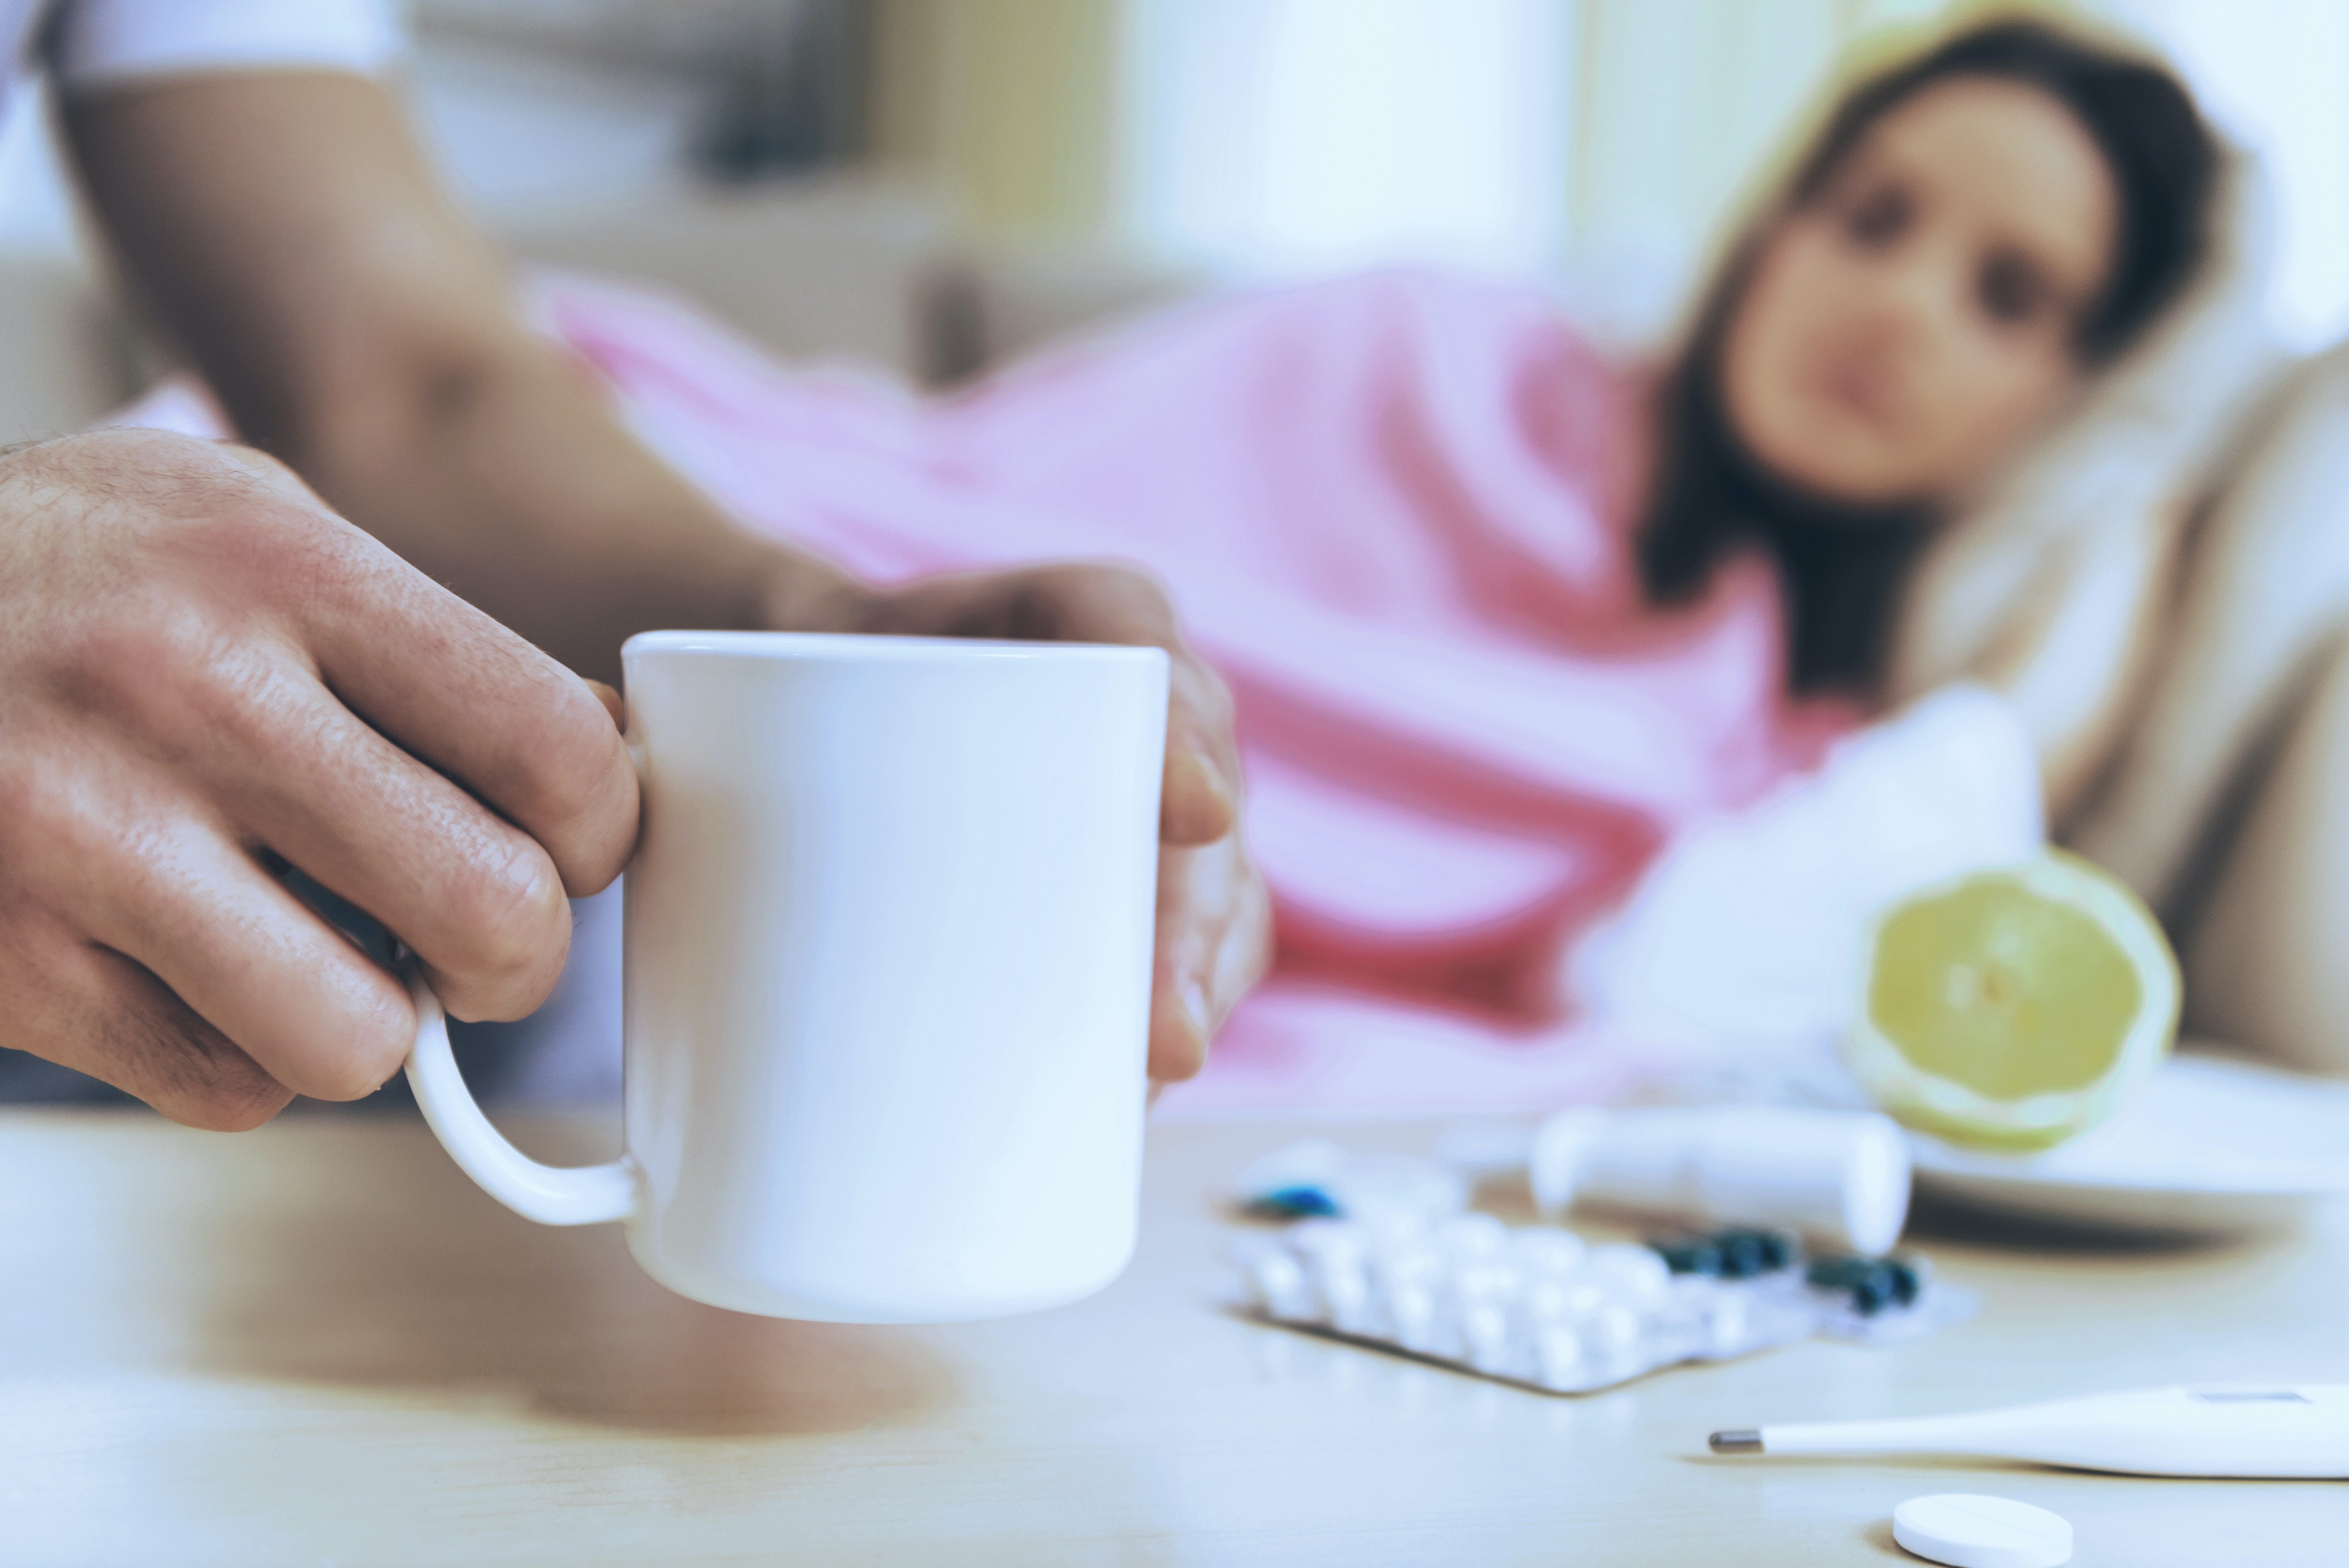 A strong immune system helps ward off colds and flus, but it's not the only factor